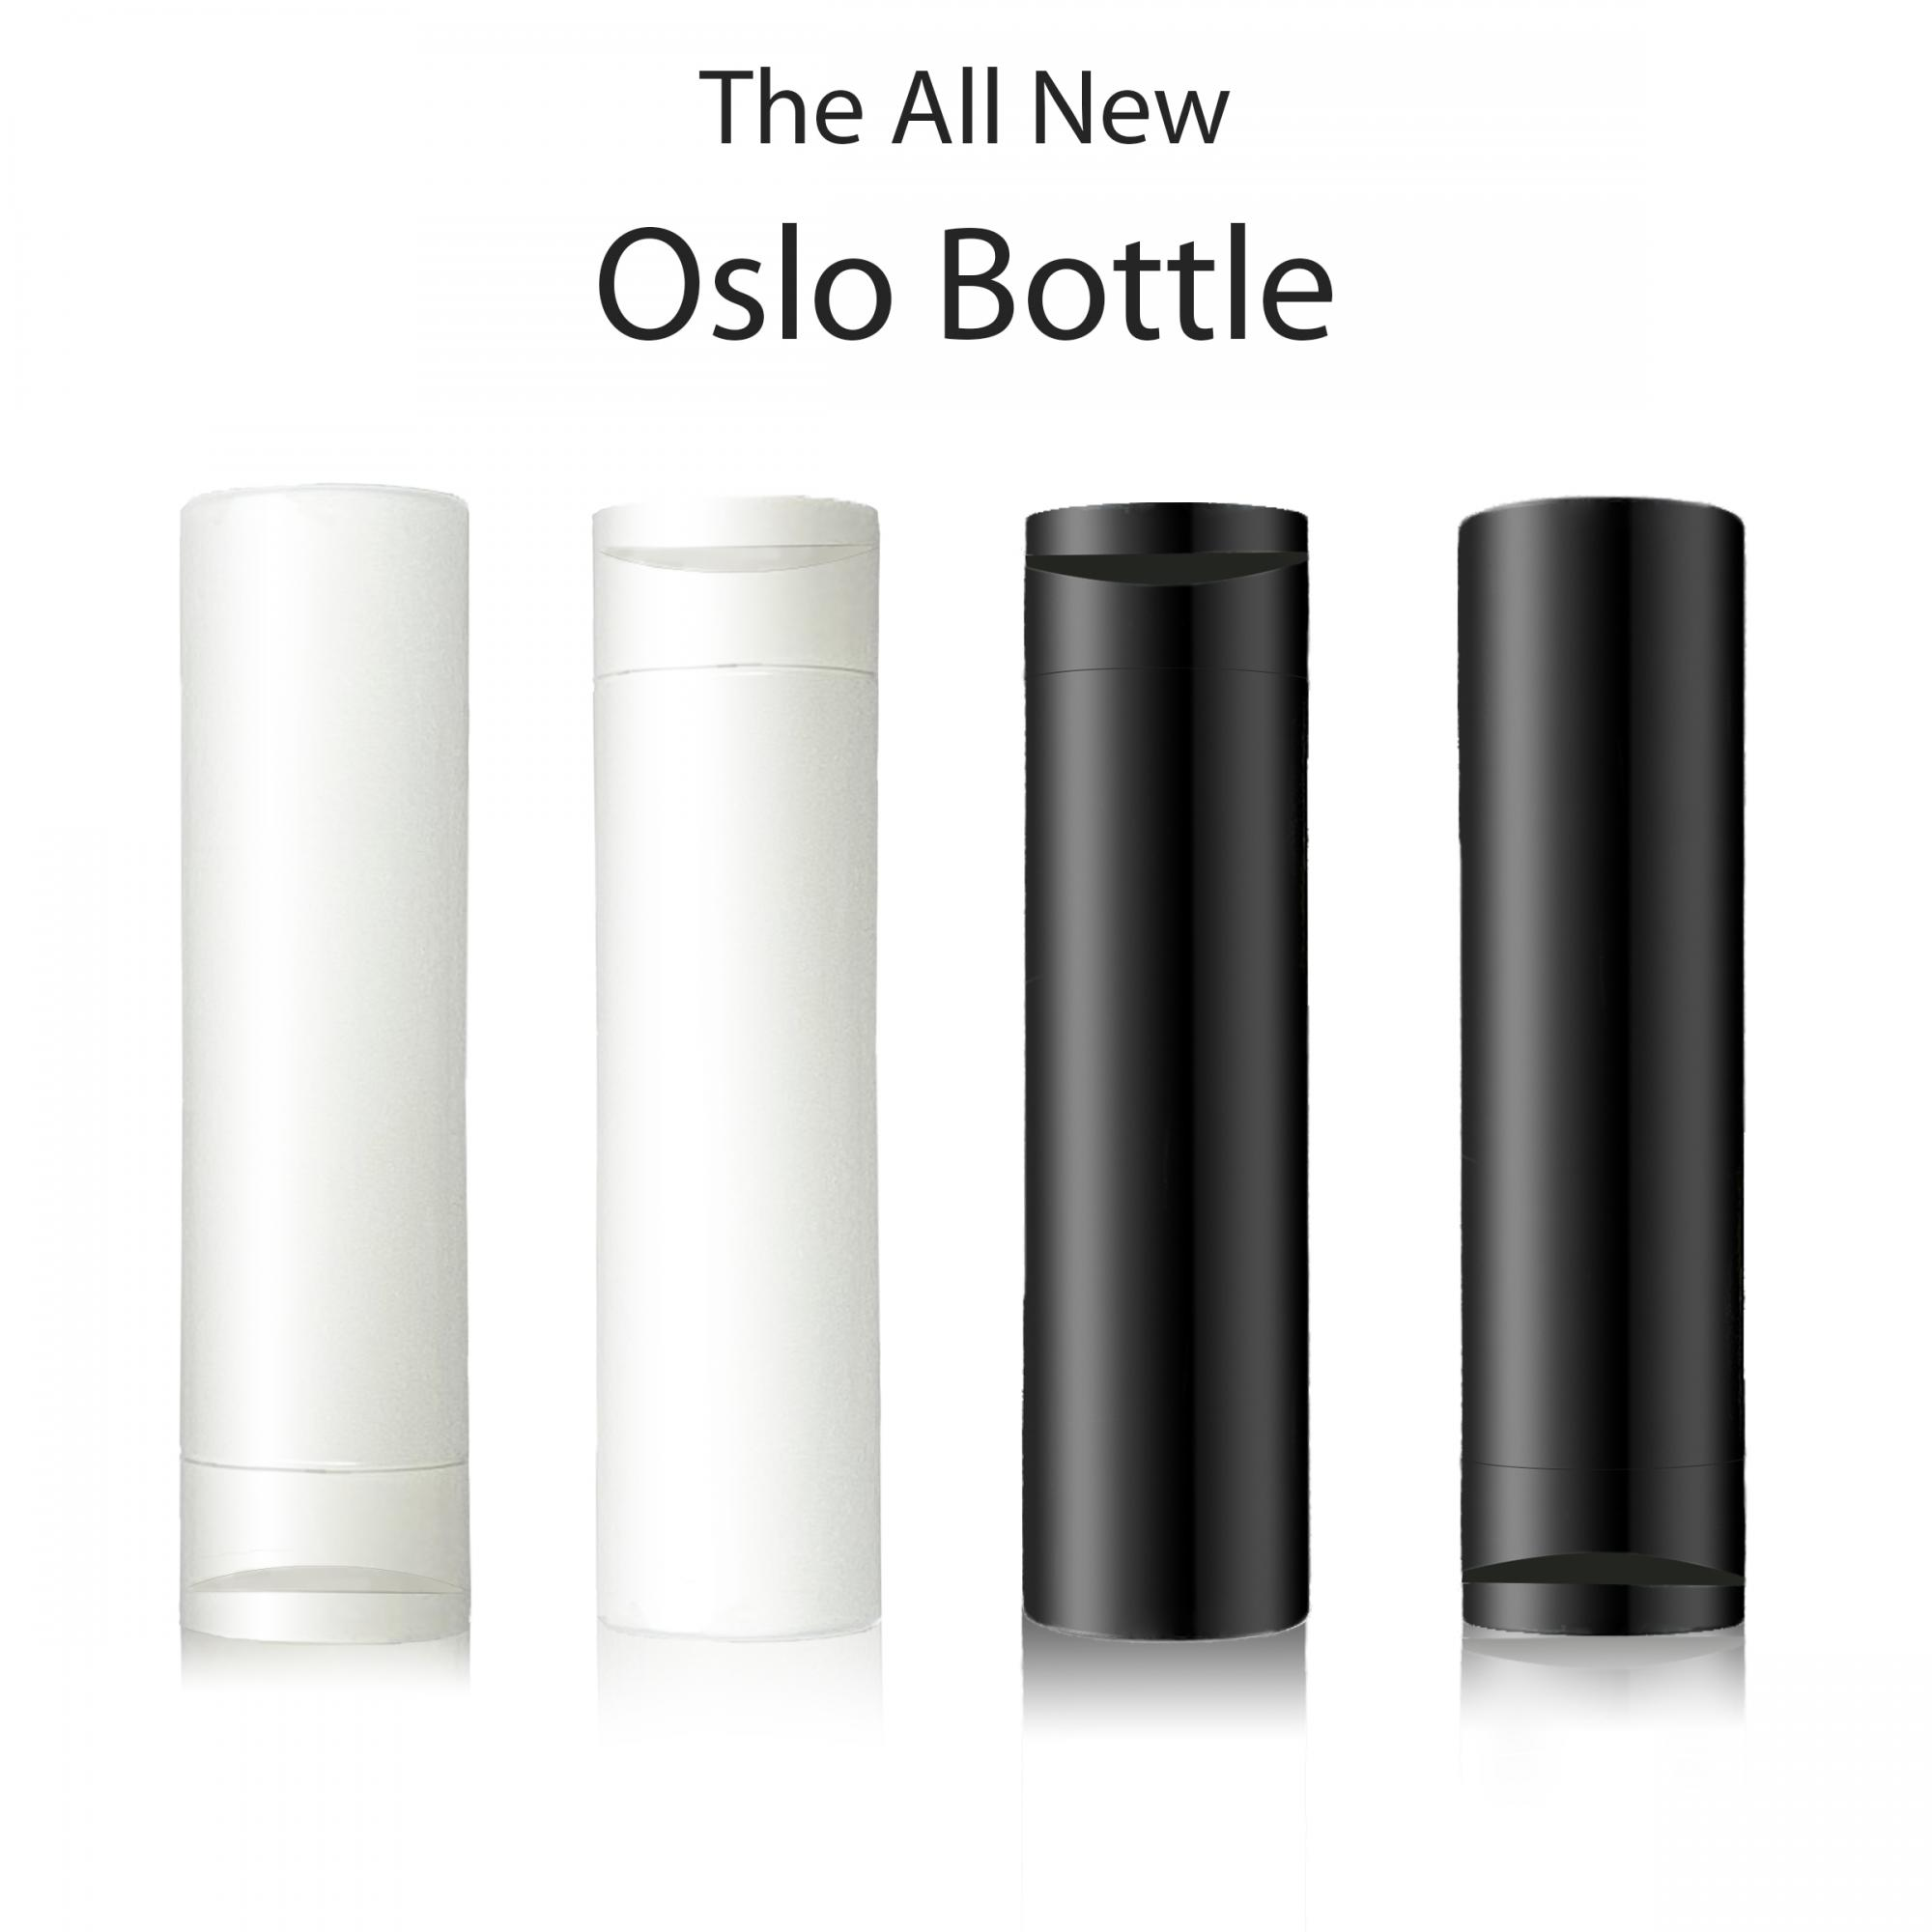 Oslo Bottle